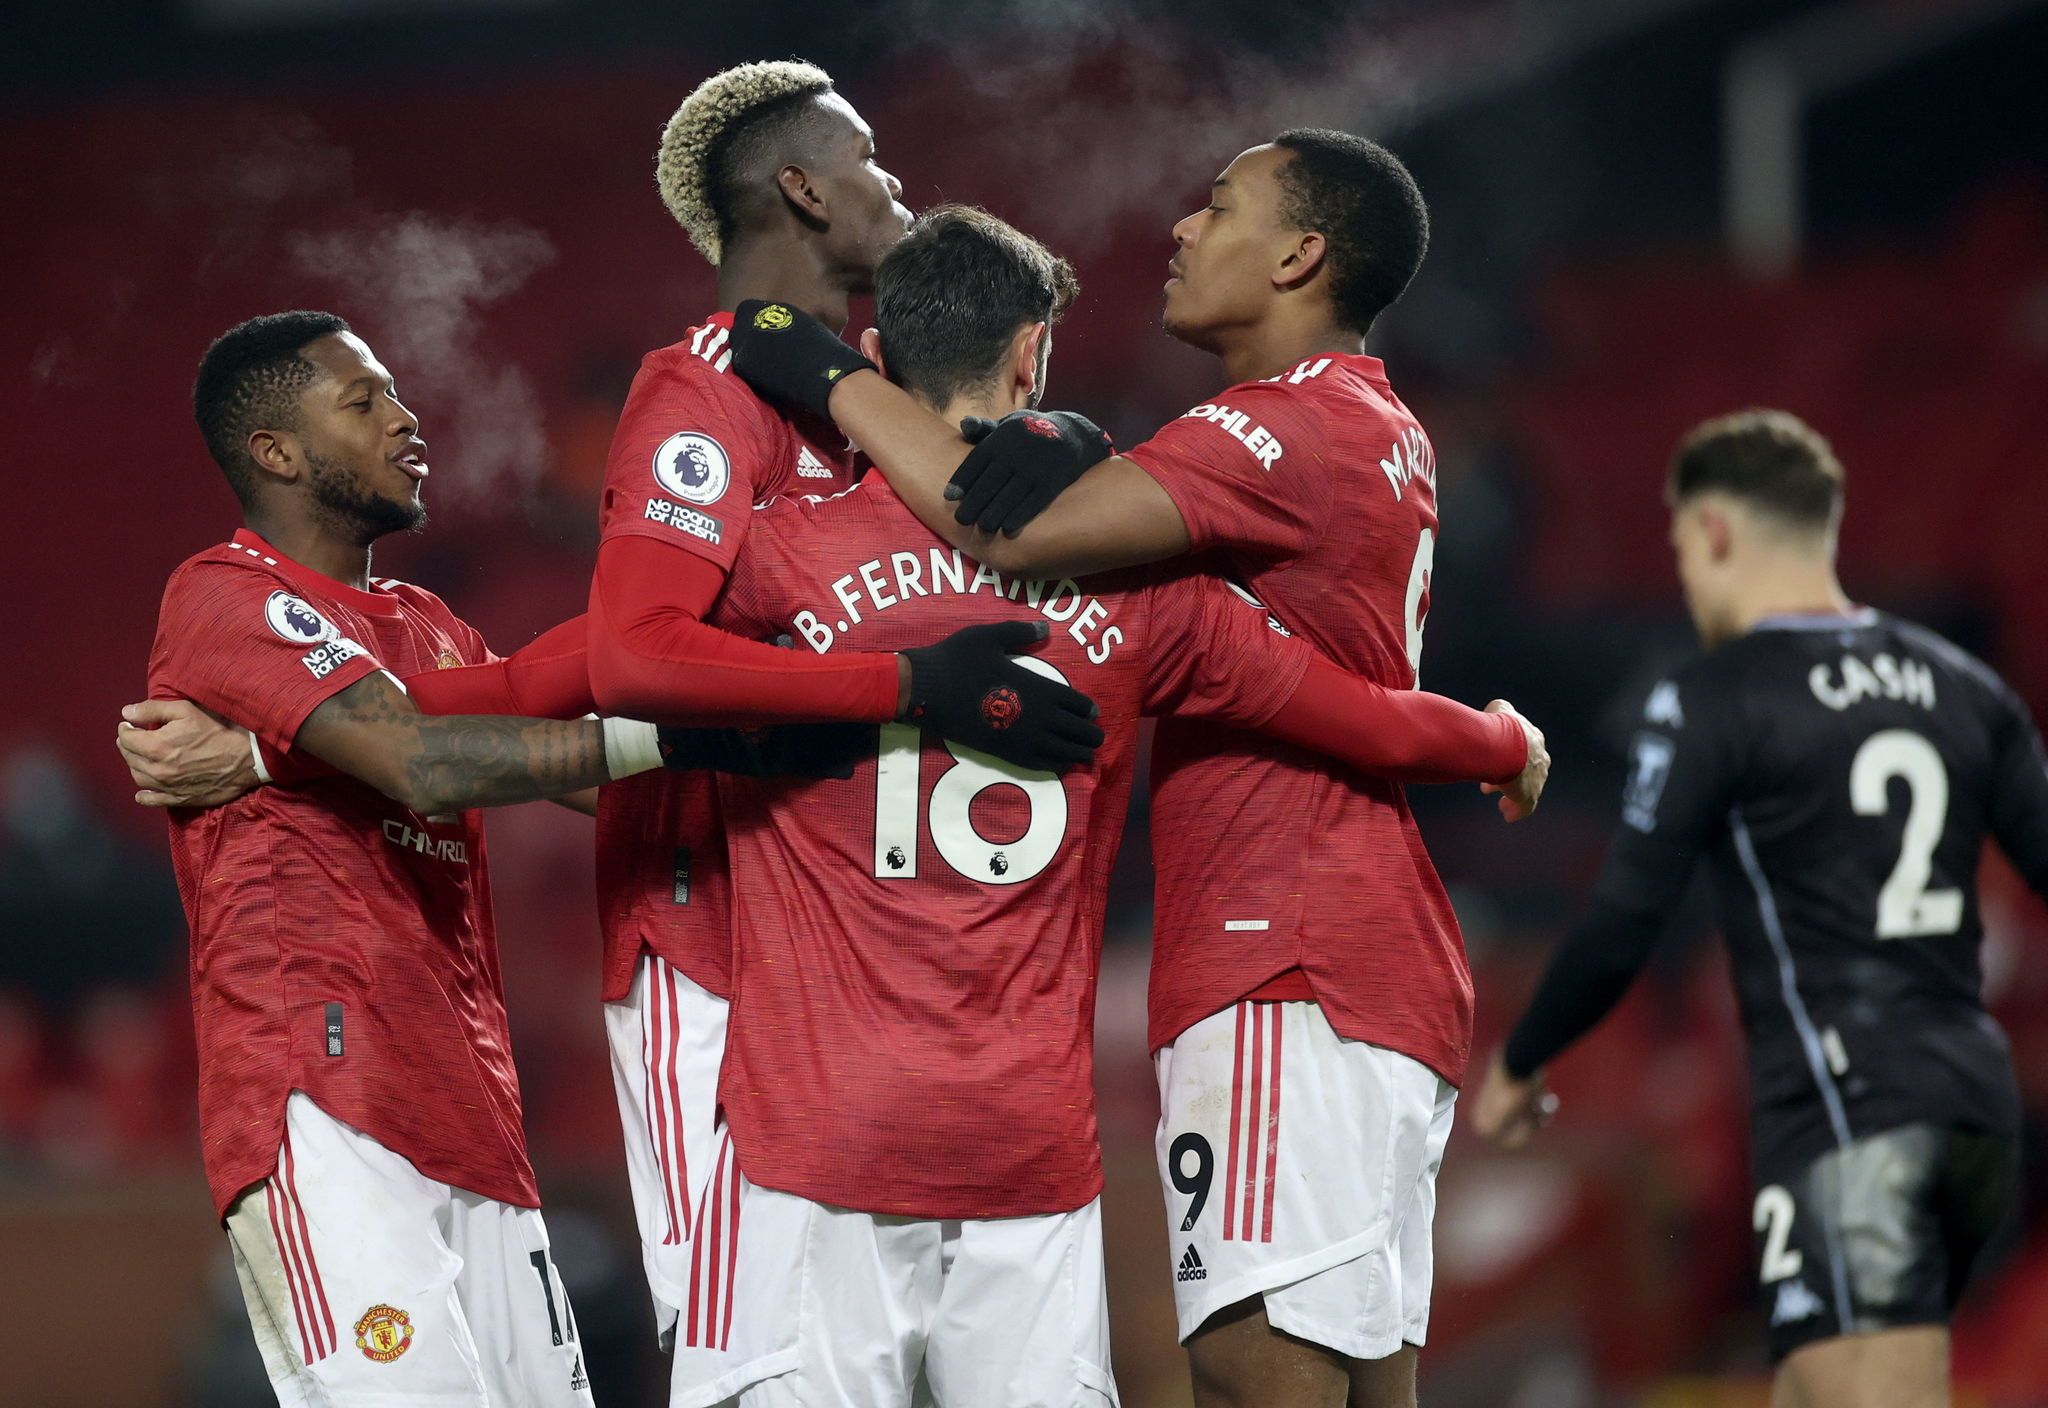 lt;HIT gt;Manchester lt;/HIT gt; ( lt;HIT gt;United lt;/HIT gt; Kingdom), 01/01/2021.- Bruno Fernandes (C) of lt;HIT gt;Manchester lt;/HIT gt; lt;HIT gt;United lt;/HIT gt; celebrates with teammates after scoring the 2-1 lead during the English Premier League soccer match between lt;HIT gt;Manchester lt;/HIT gt; lt;HIT gt;United lt;/HIT gt; and Aston Villa in lt;HIT gt;Manchester lt;/HIT gt;, Britain, 01 January 2021. (Reino Unido) EFE/EPA/Carl Recine / POOL EDITORIAL USE ONLY. No use with unauthorized audio, video, data, fixture lists, club/league logos or 'live' services. Online in-match use limited to 120 images, no video emulation. No use in betting, games or single club/league/player publications